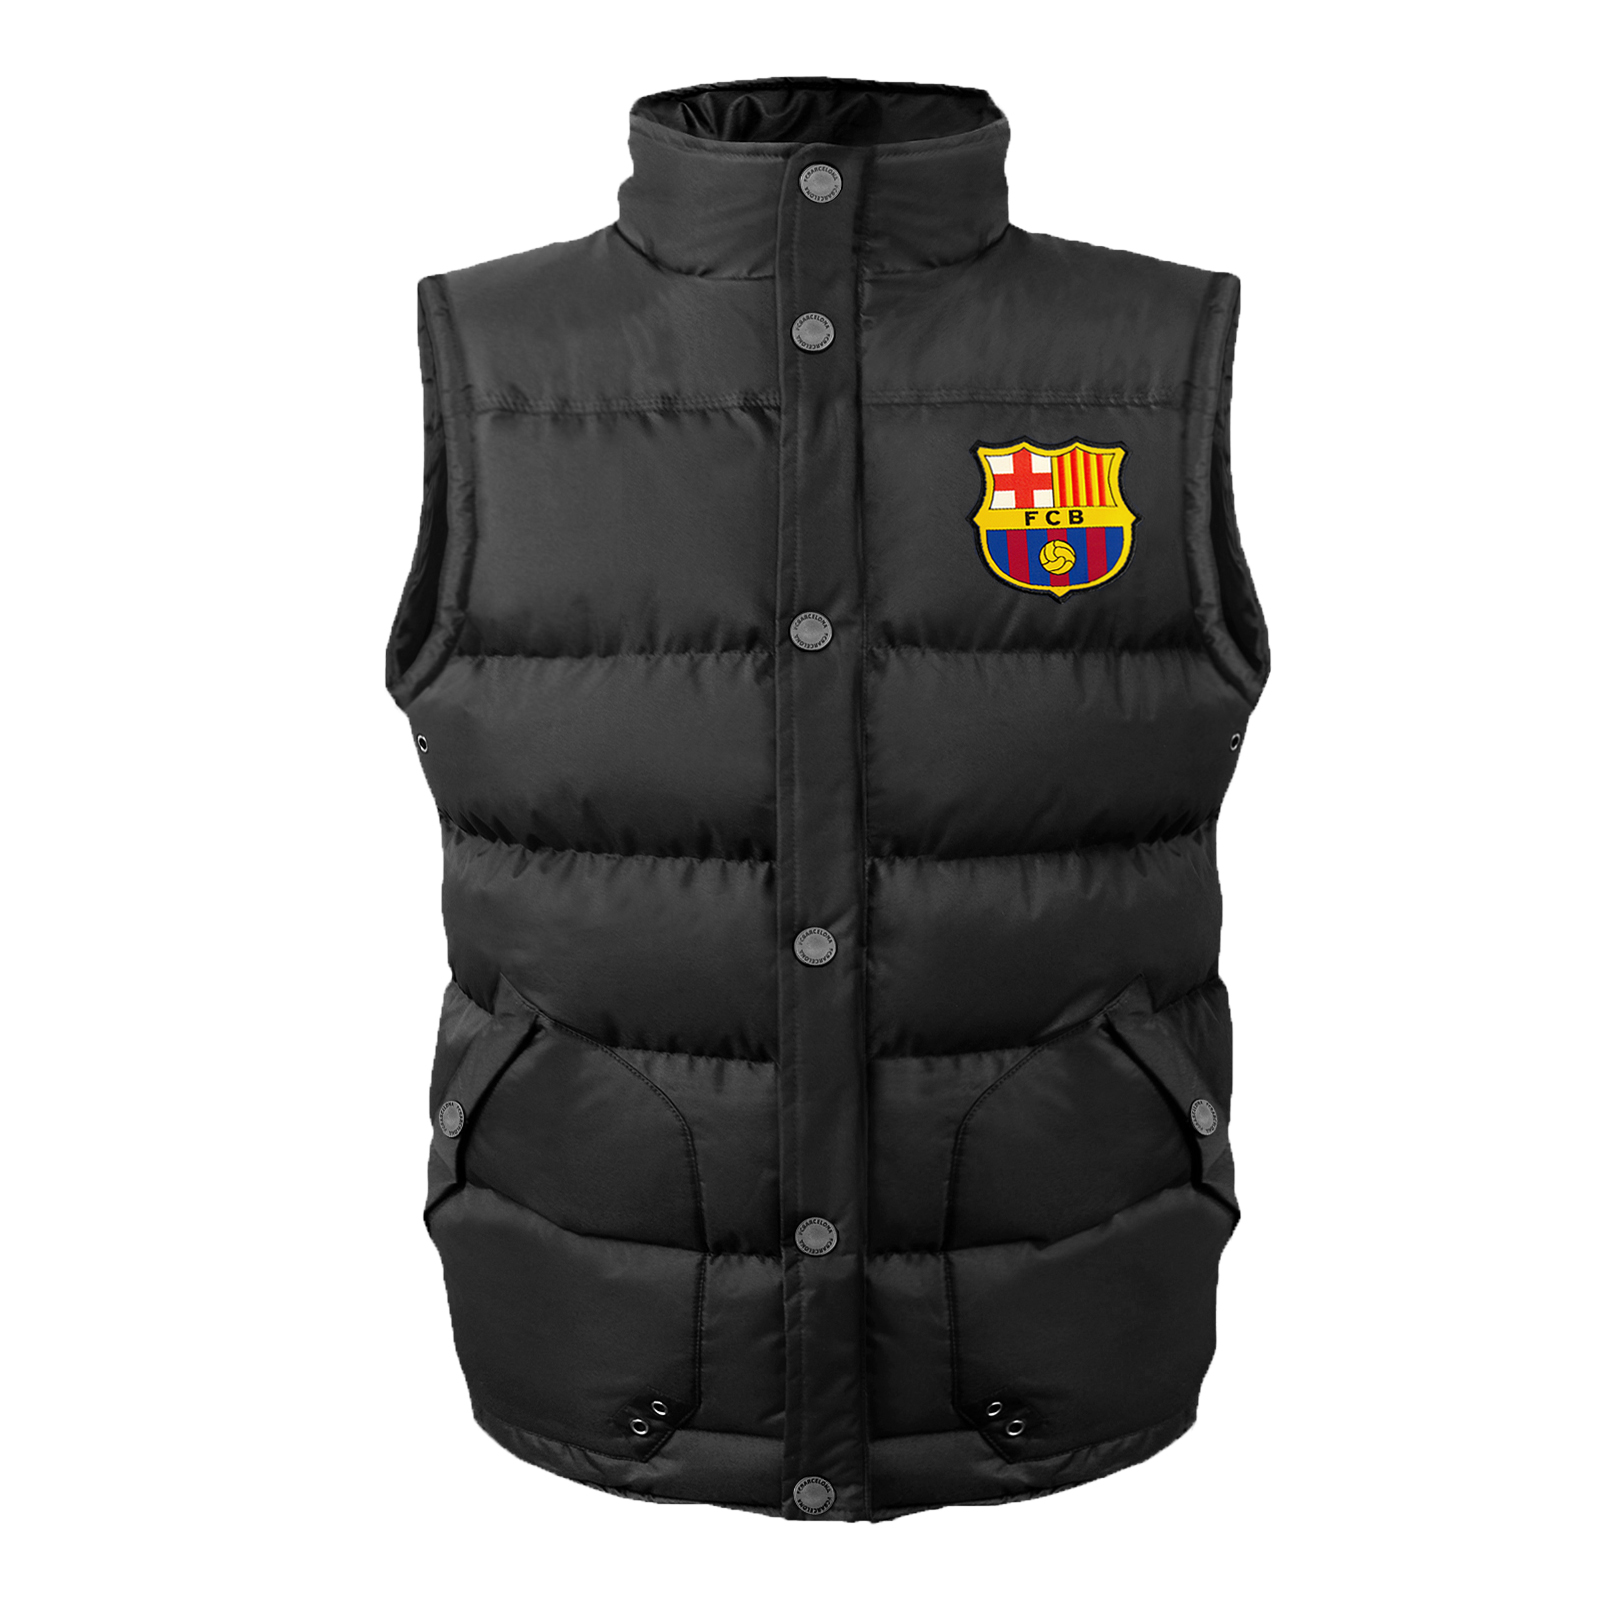 FC-Barcelona-officiel-Gilet-rembourre-sans-manches-theme-football-garcon